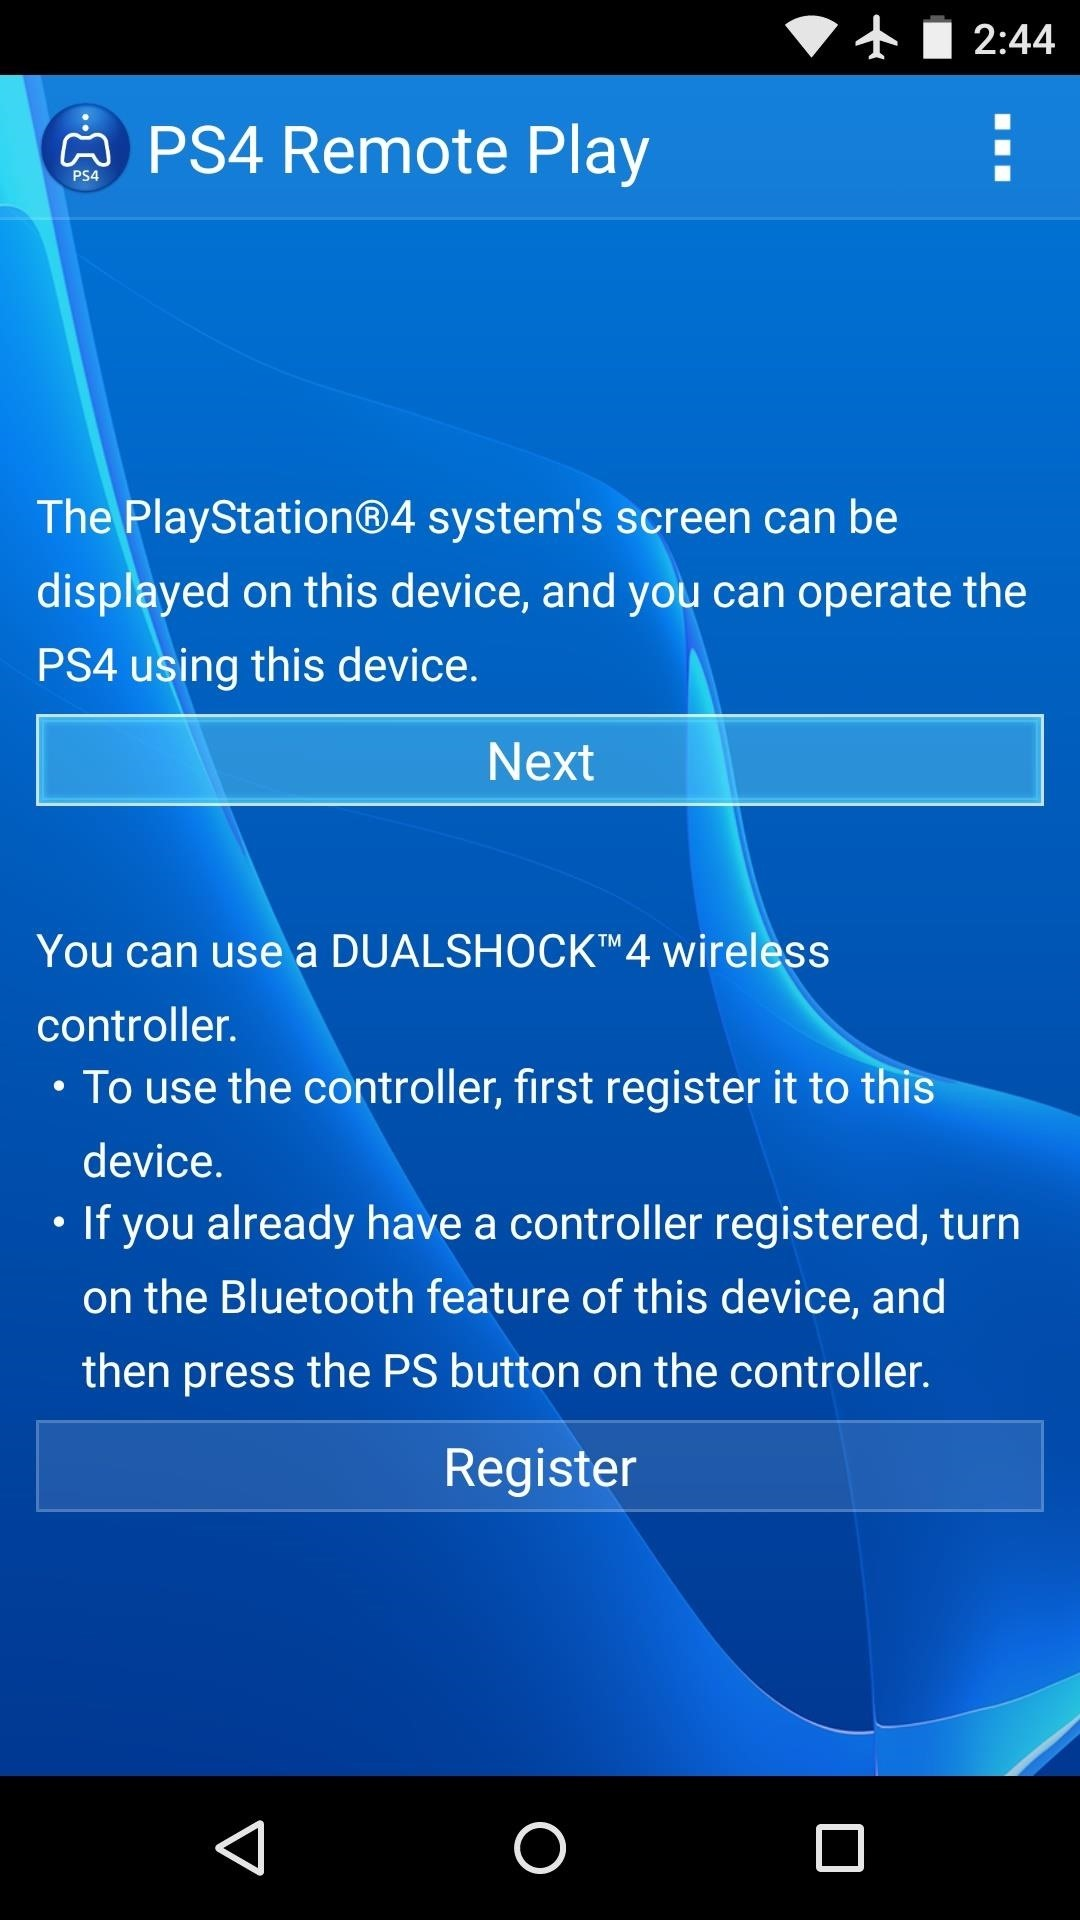 How To Play Your Favorite Ps4 Games Remotely On Any Android Device Playstation 4 Block Diagram Step 3sign Into Account